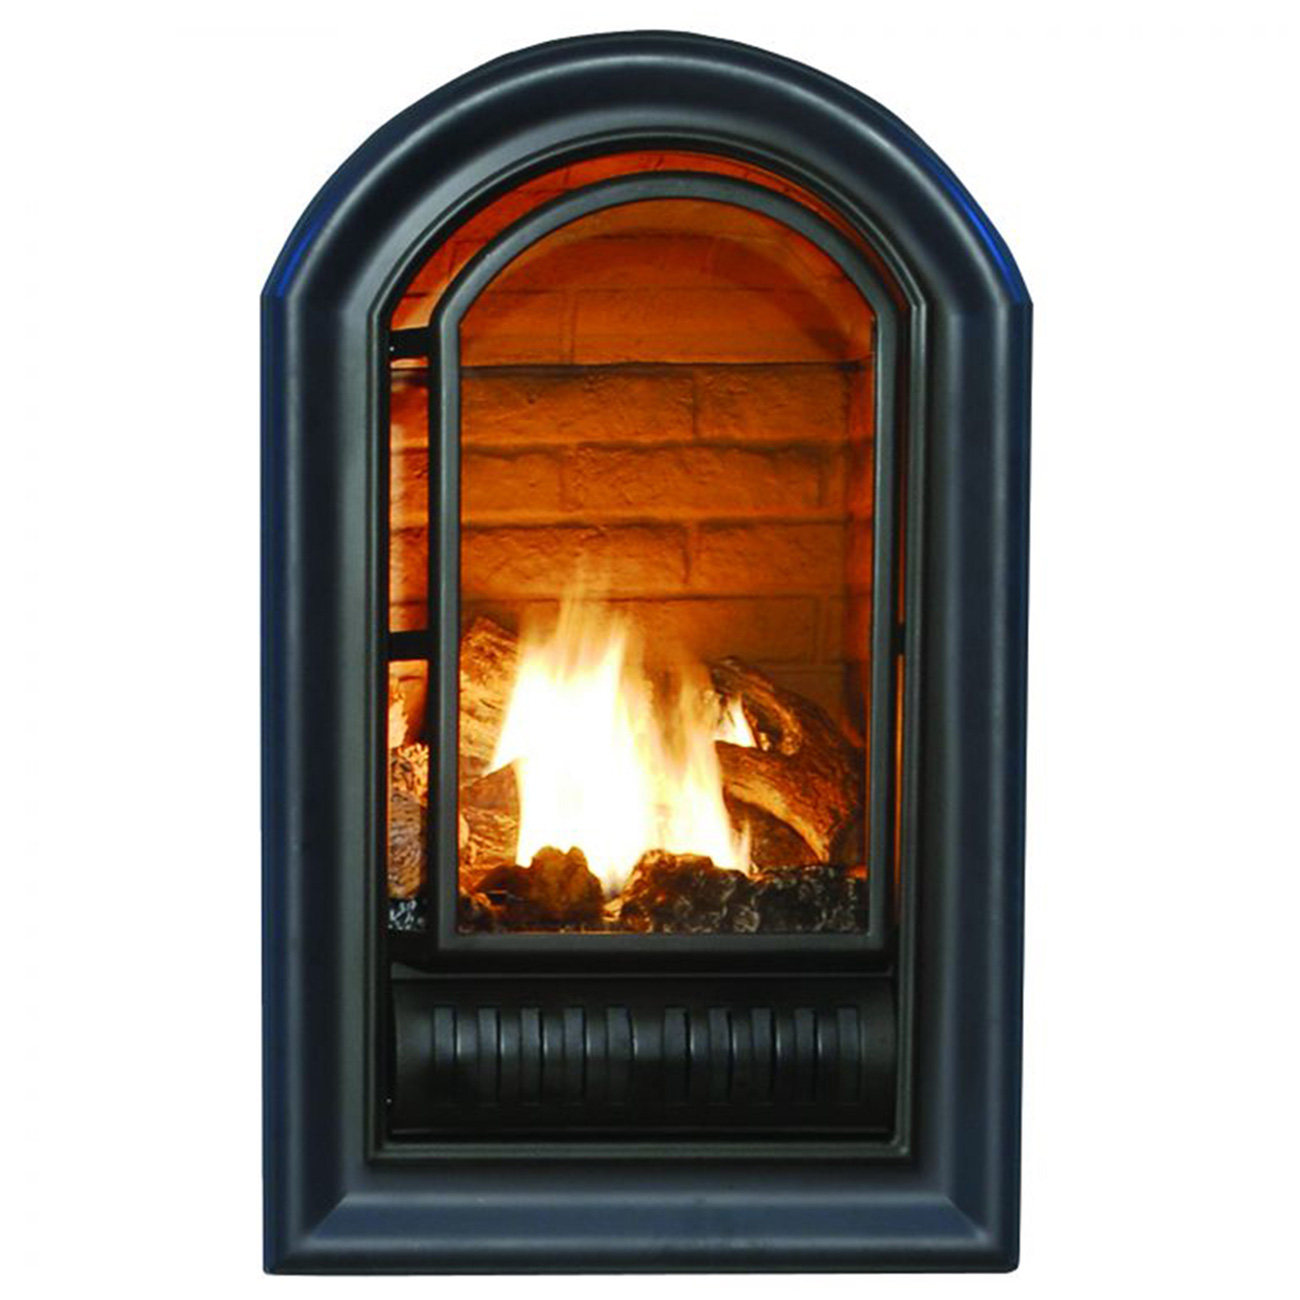 ventless liquid propane fireplace insert 20 000 btu procom heating